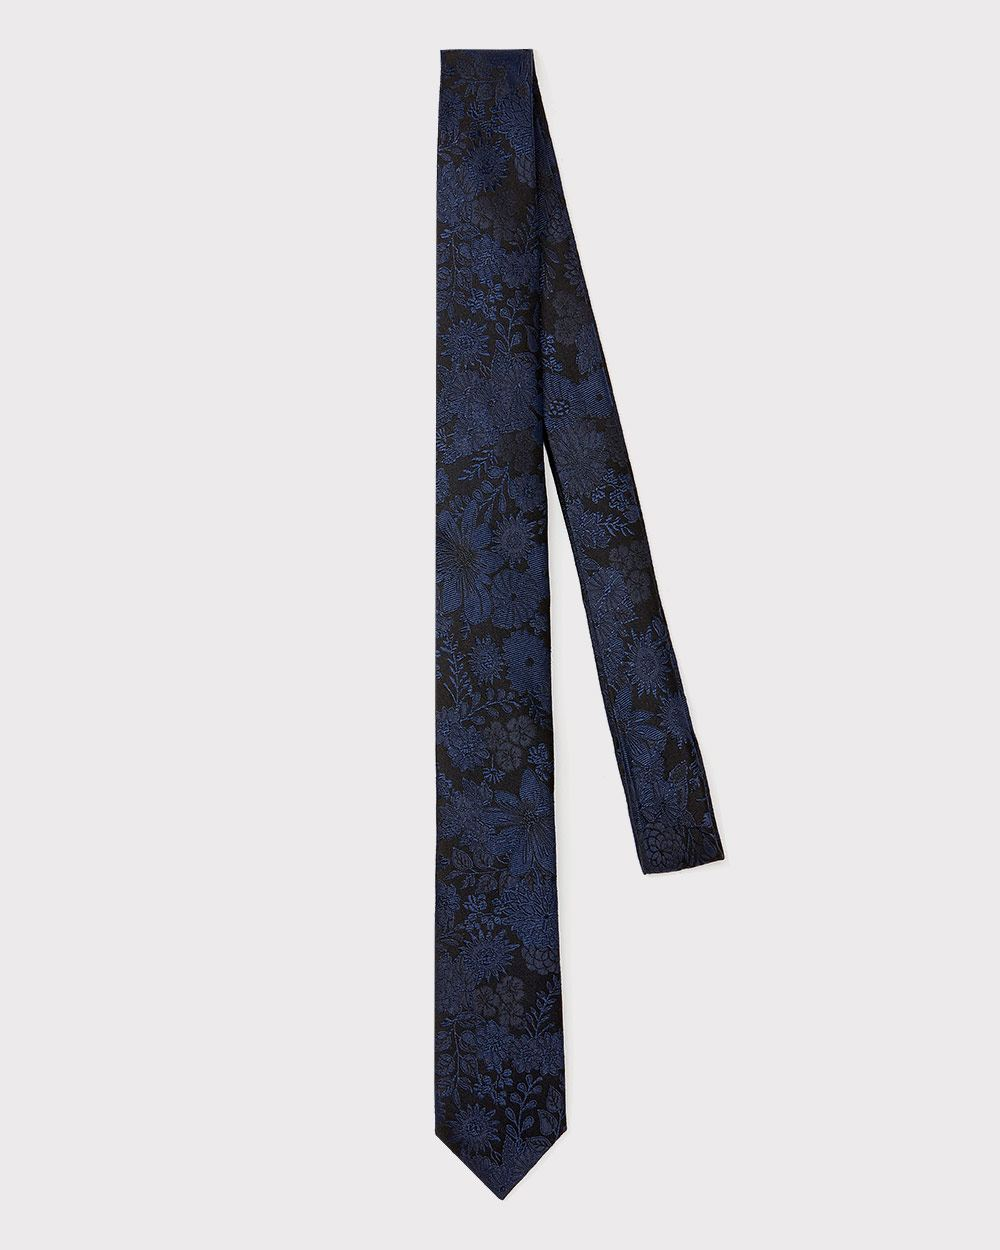 Regular Navy Floral Tie Rwco Tendencies Chinos Short 32